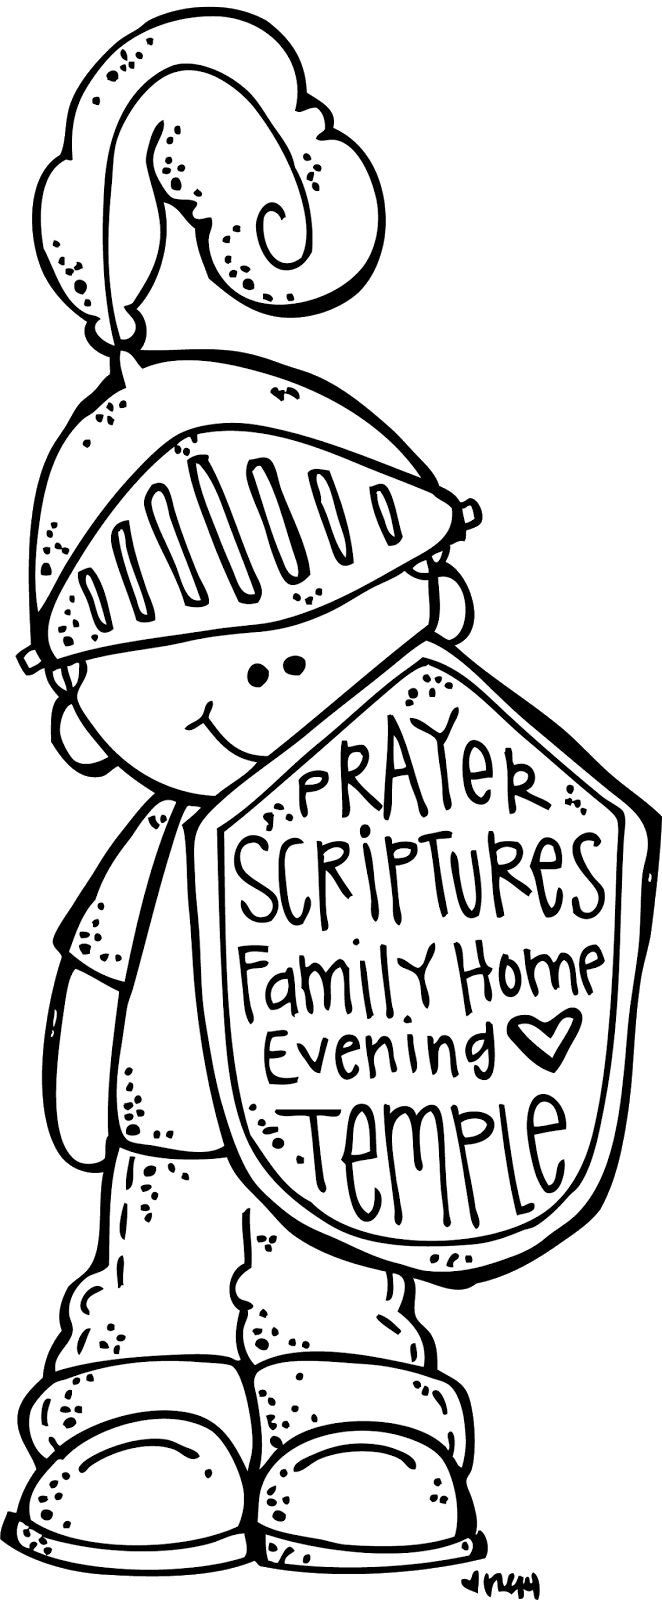 Lds clipart family home evening